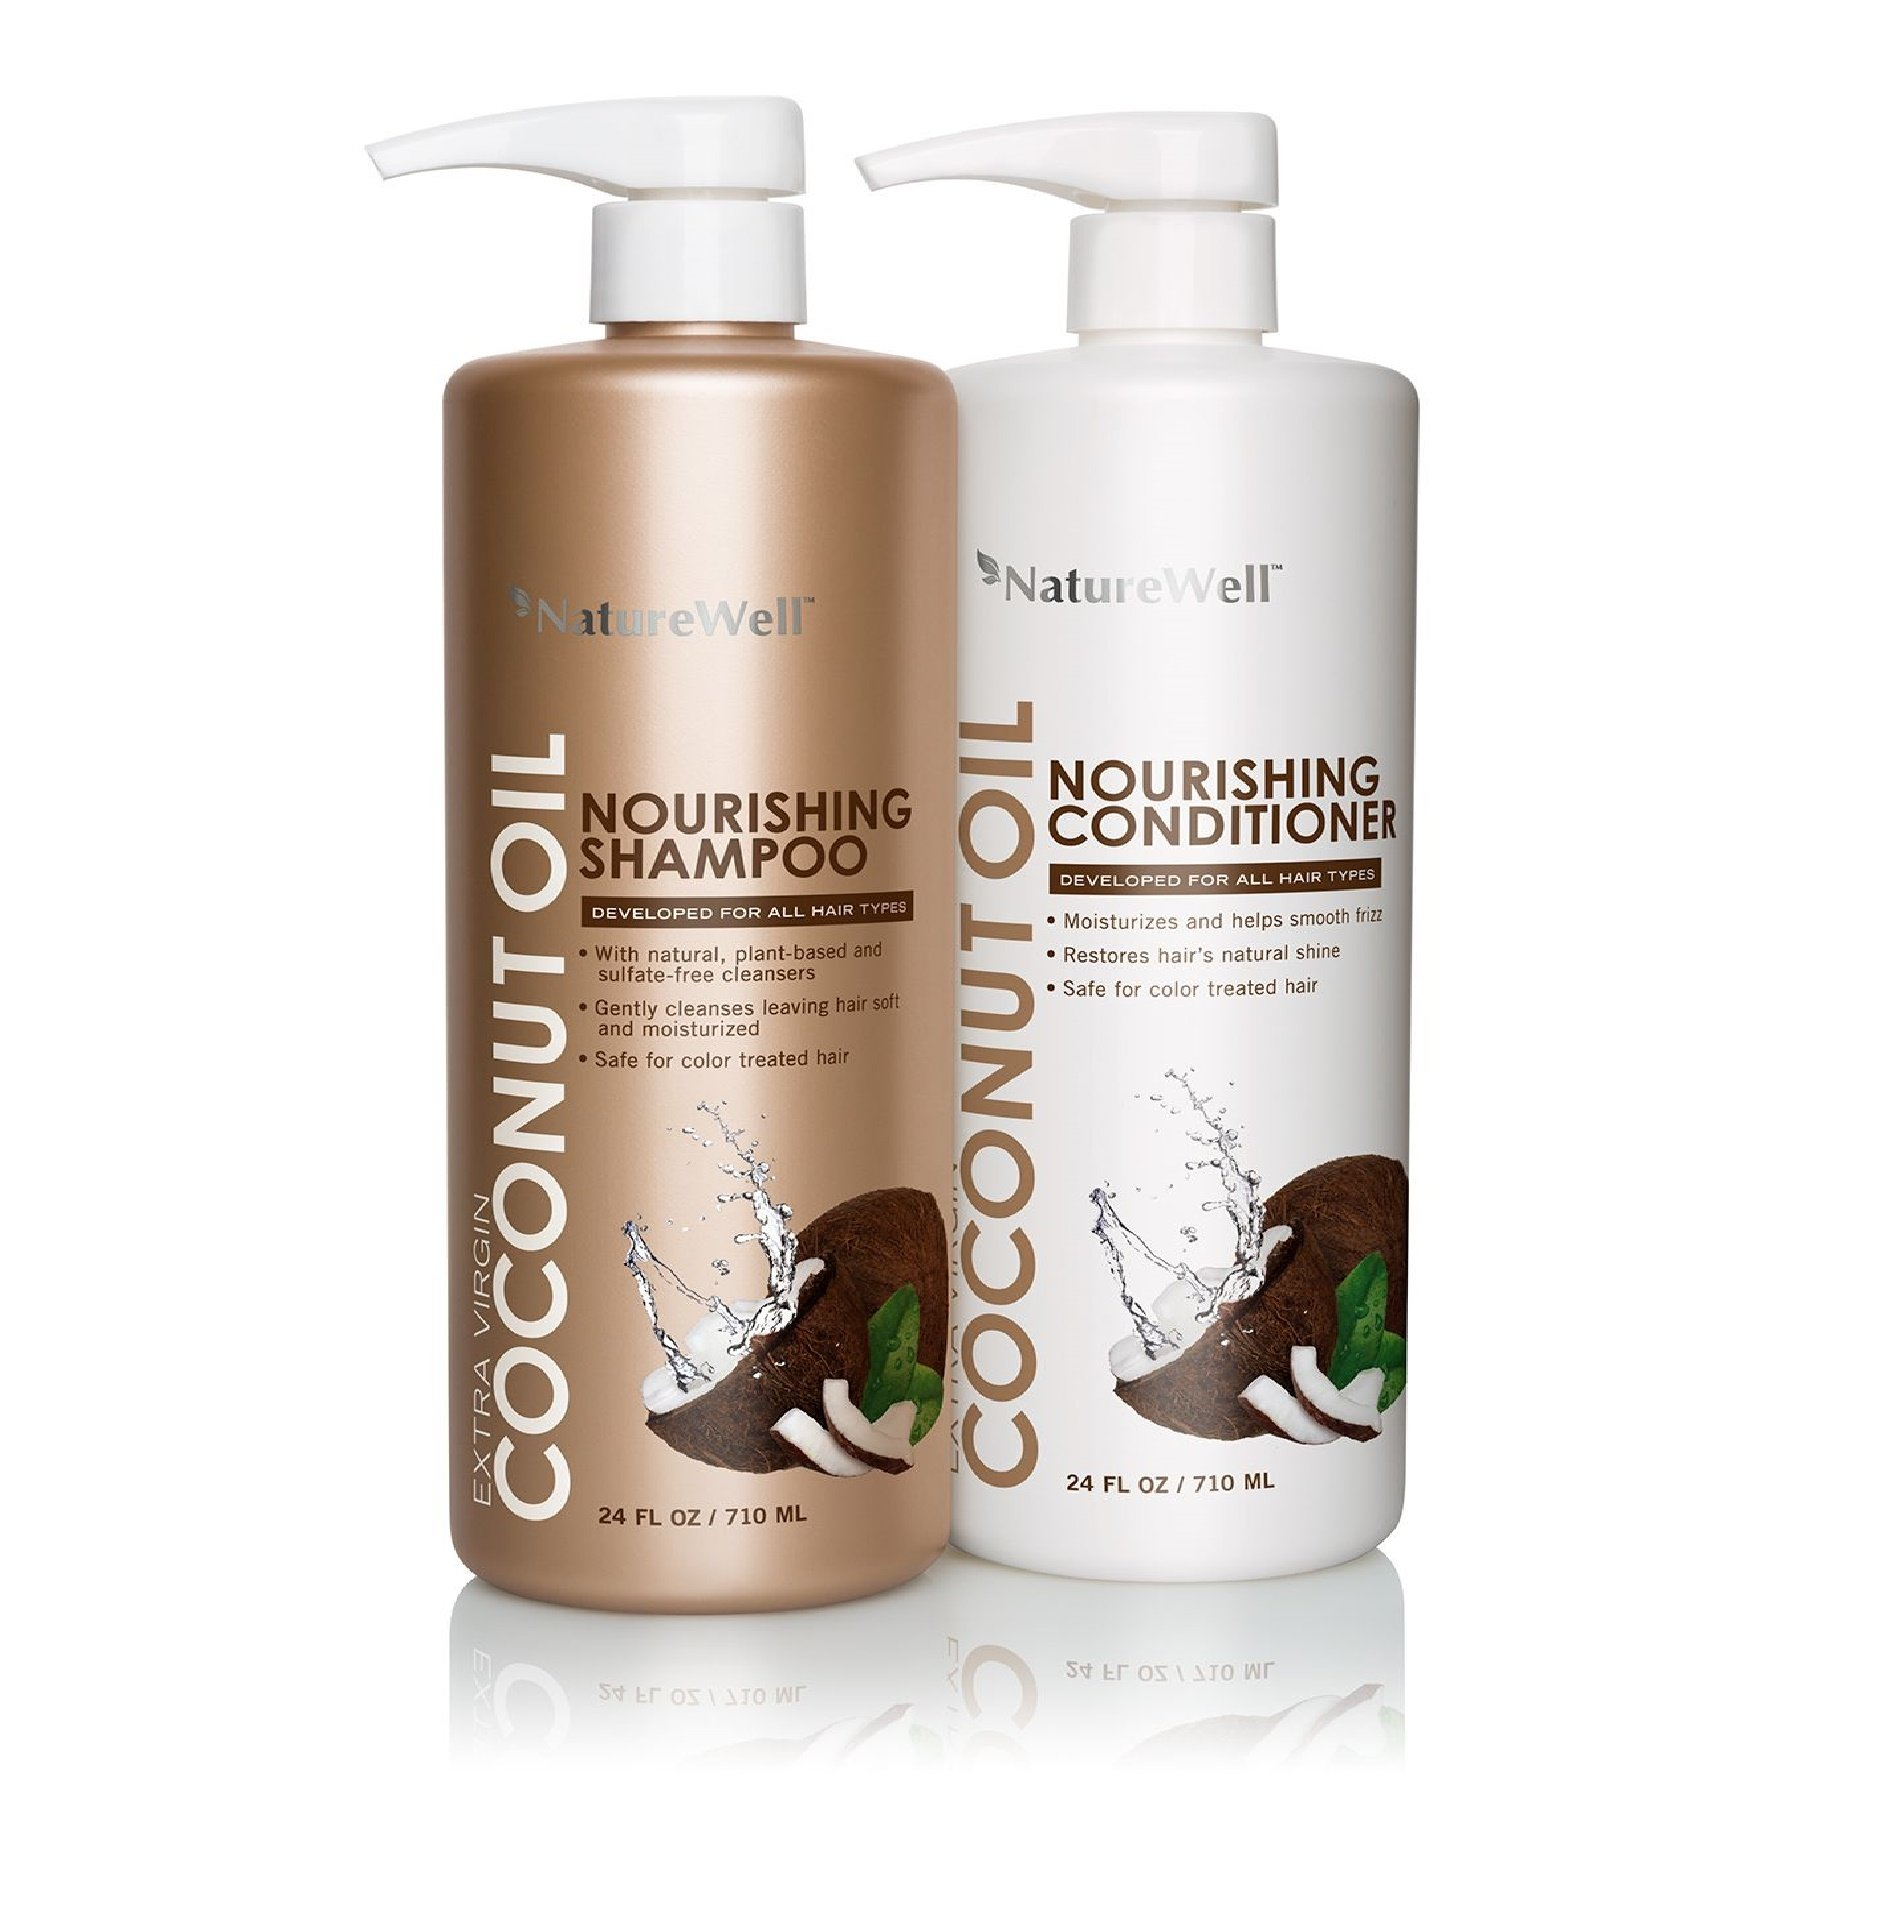 NatureWell Extra Virgin Coconut Oil Nourishing Shampoo and Conditioner Set (24 fl oz each)